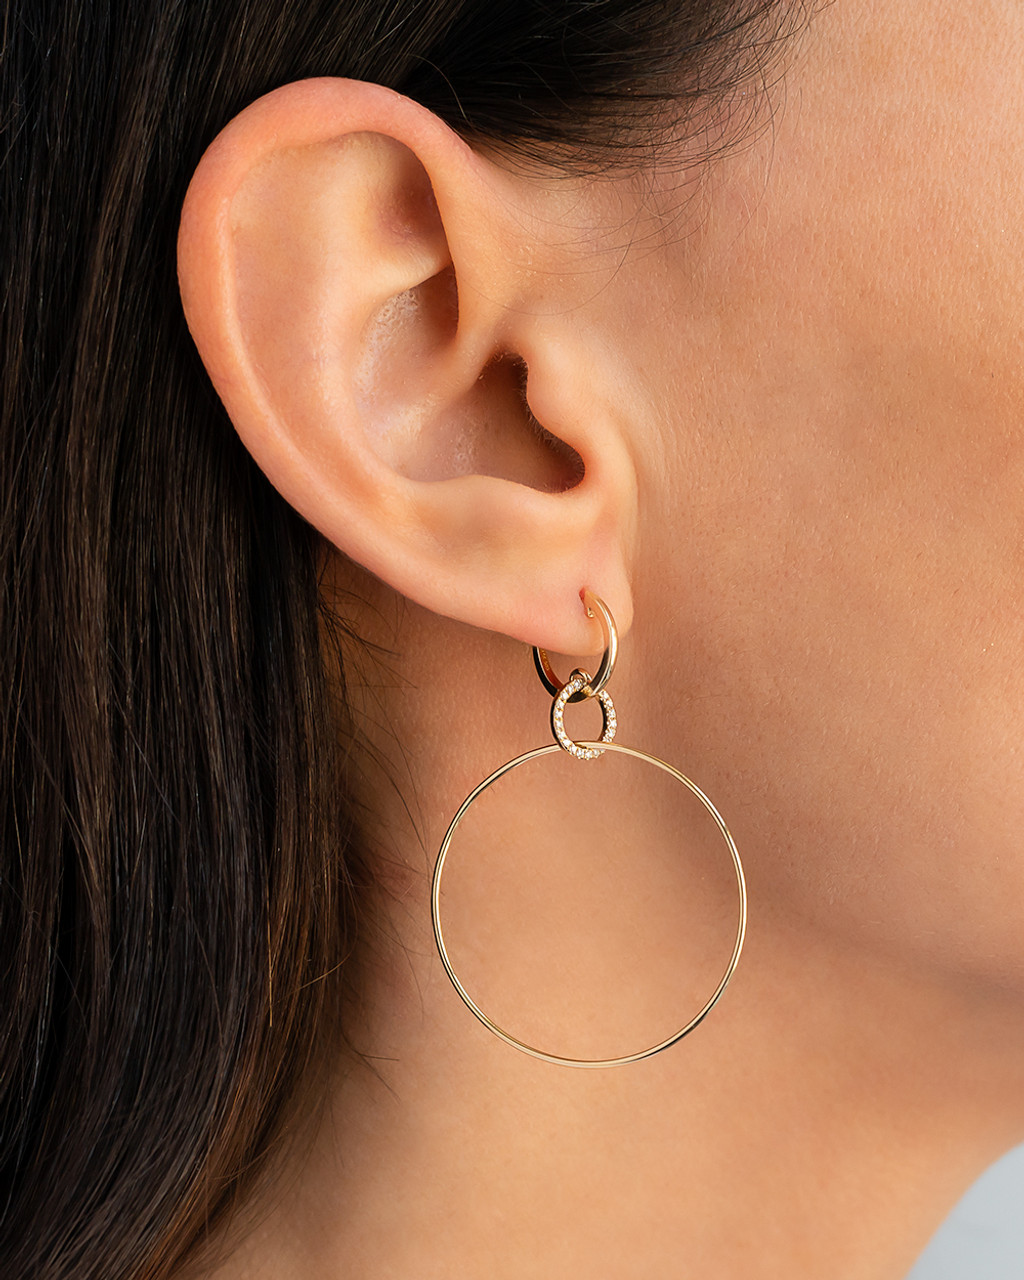 14k gold huggies with small diamond circle and large hoops